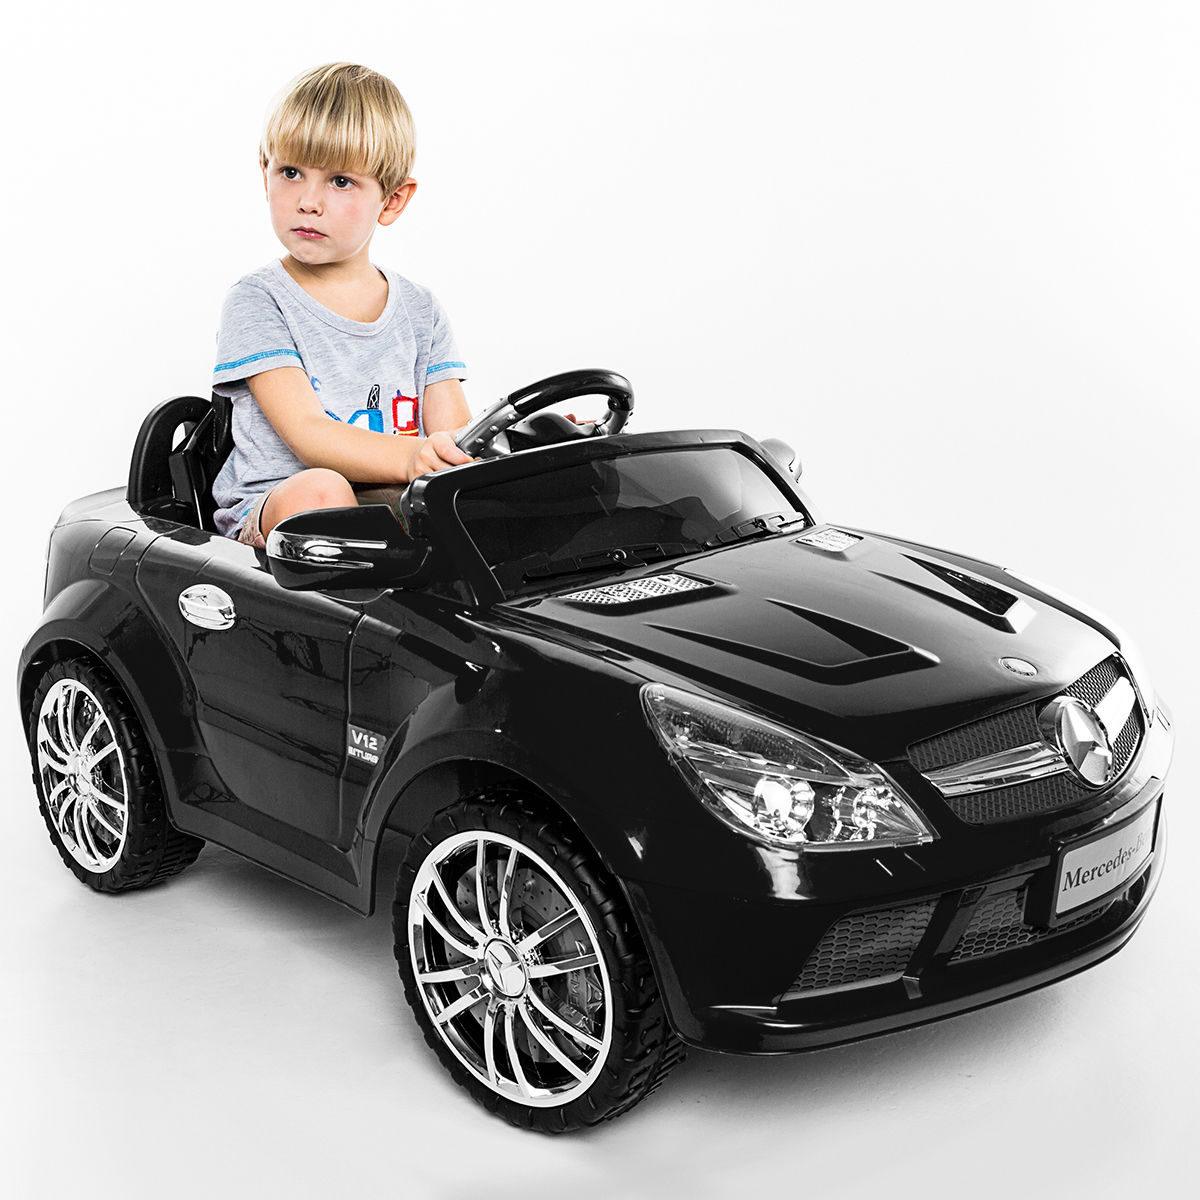 Costway 12V Mercedes-Benz SL65 Electric Kids Ride On Car Music RC Remote Control Black by Costway